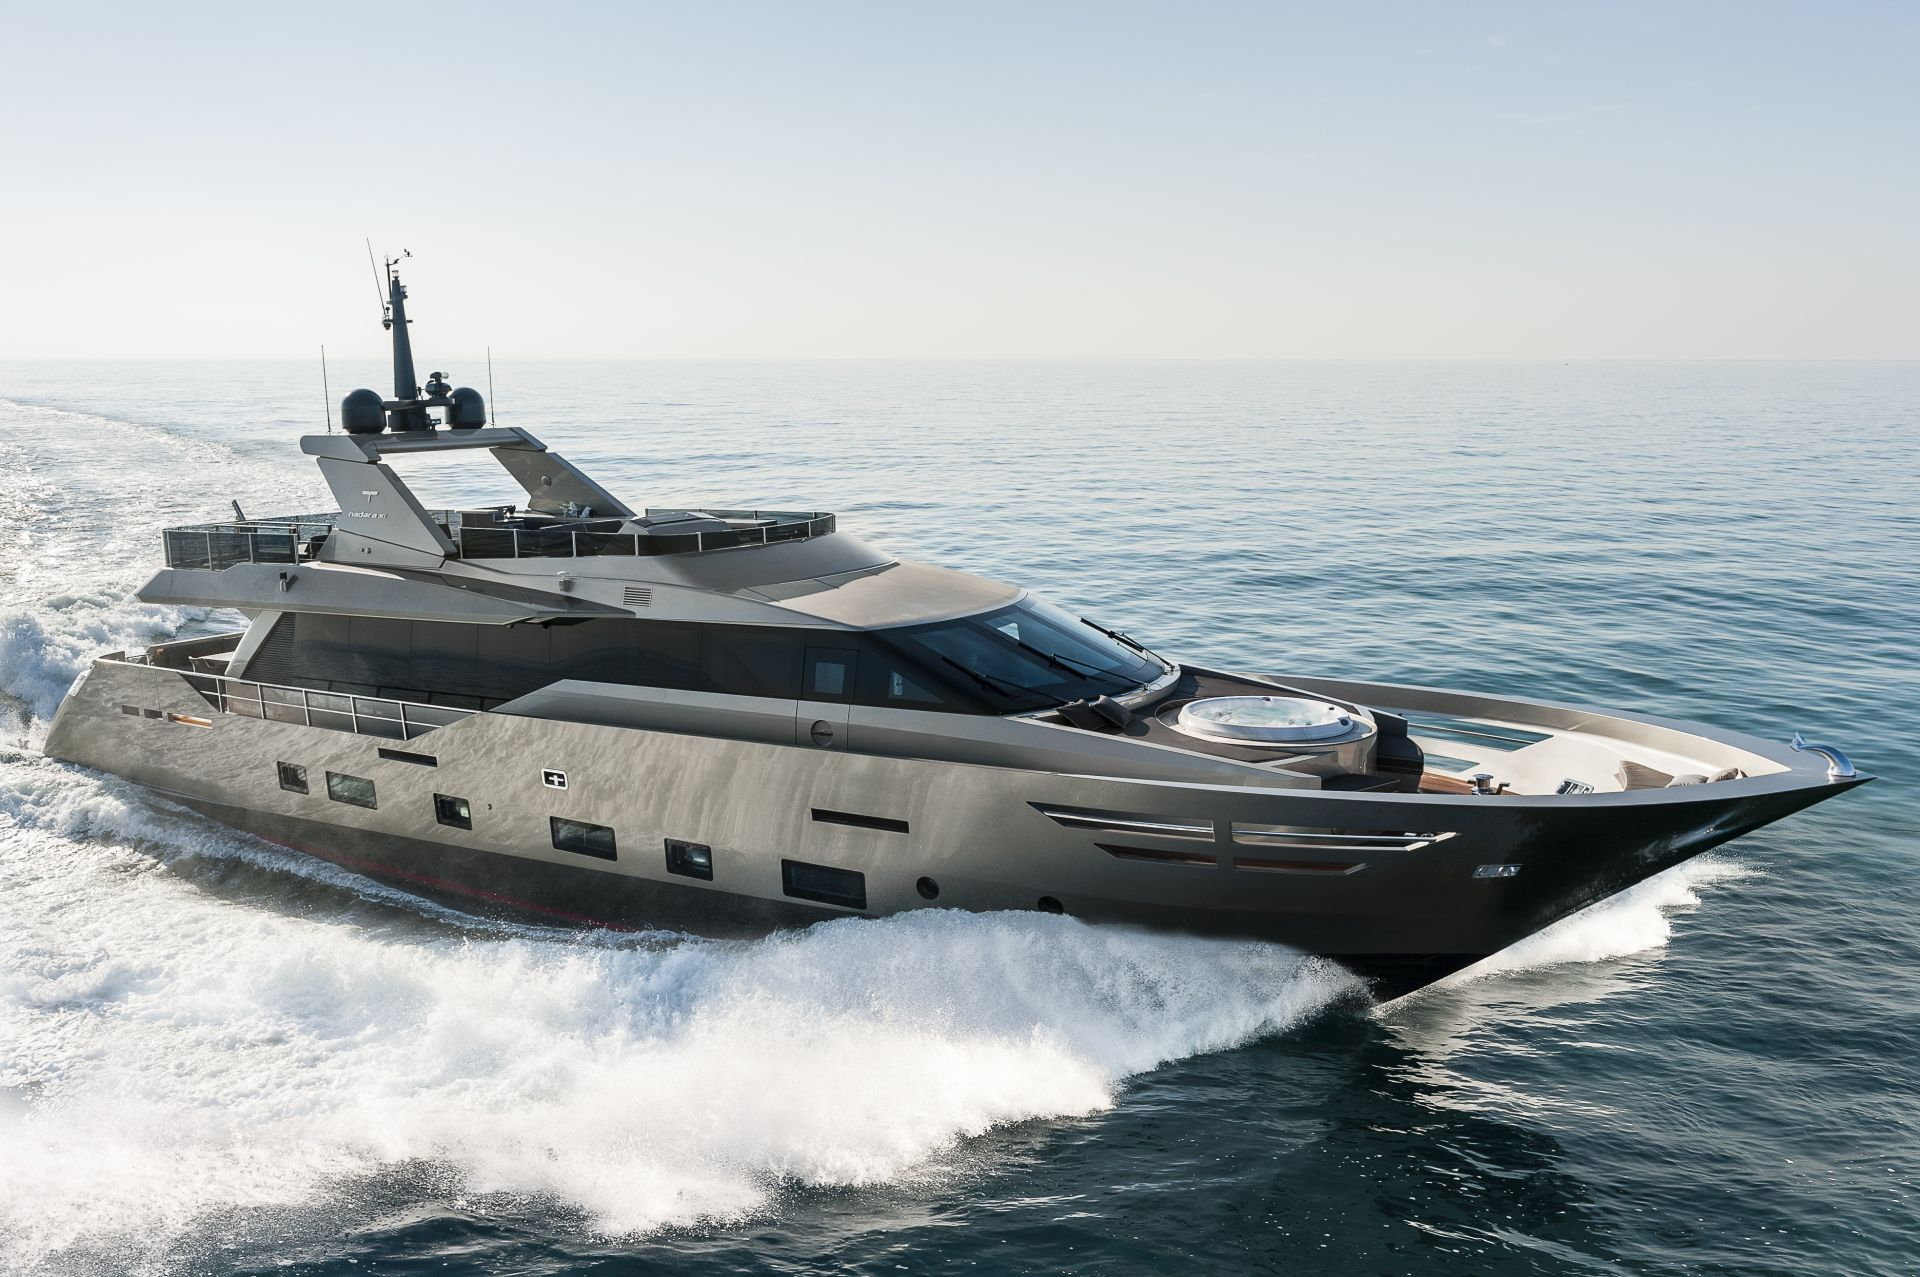 Yacht-zahraa-Admiral-Tecnomar-my-zahraa-delivered-in-2013